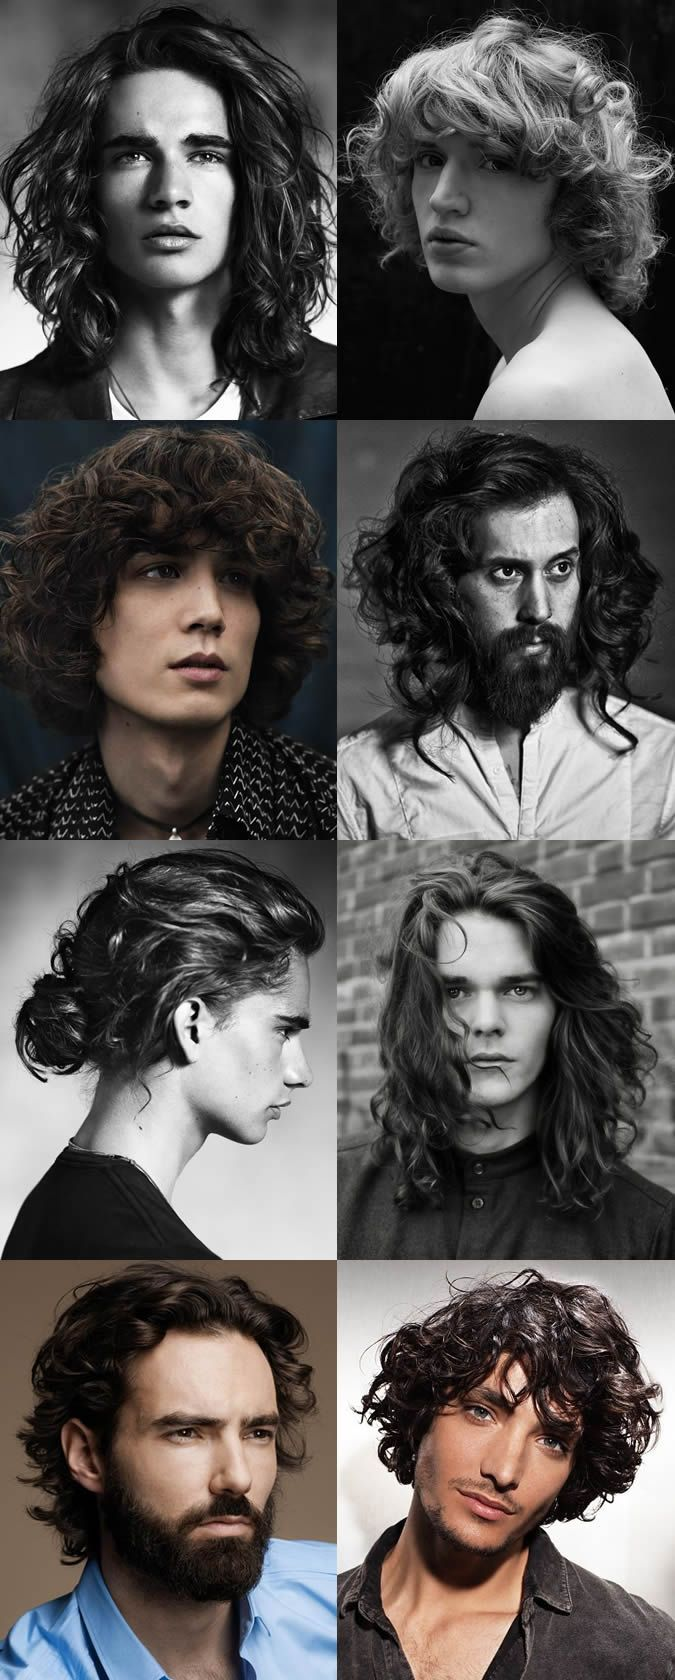 Love Mens wavy hairstyles? wanna give your hair a new look? Mens wavy hairstyles is a good choice for you. Here you will find some super sexy Mens wavy hairstyles,  Find the best one for you, #Menswavyhairstyles #Hairstyles #Hairstraightenerbeauty https://www.facebook.com/hairstraightenerbeauty